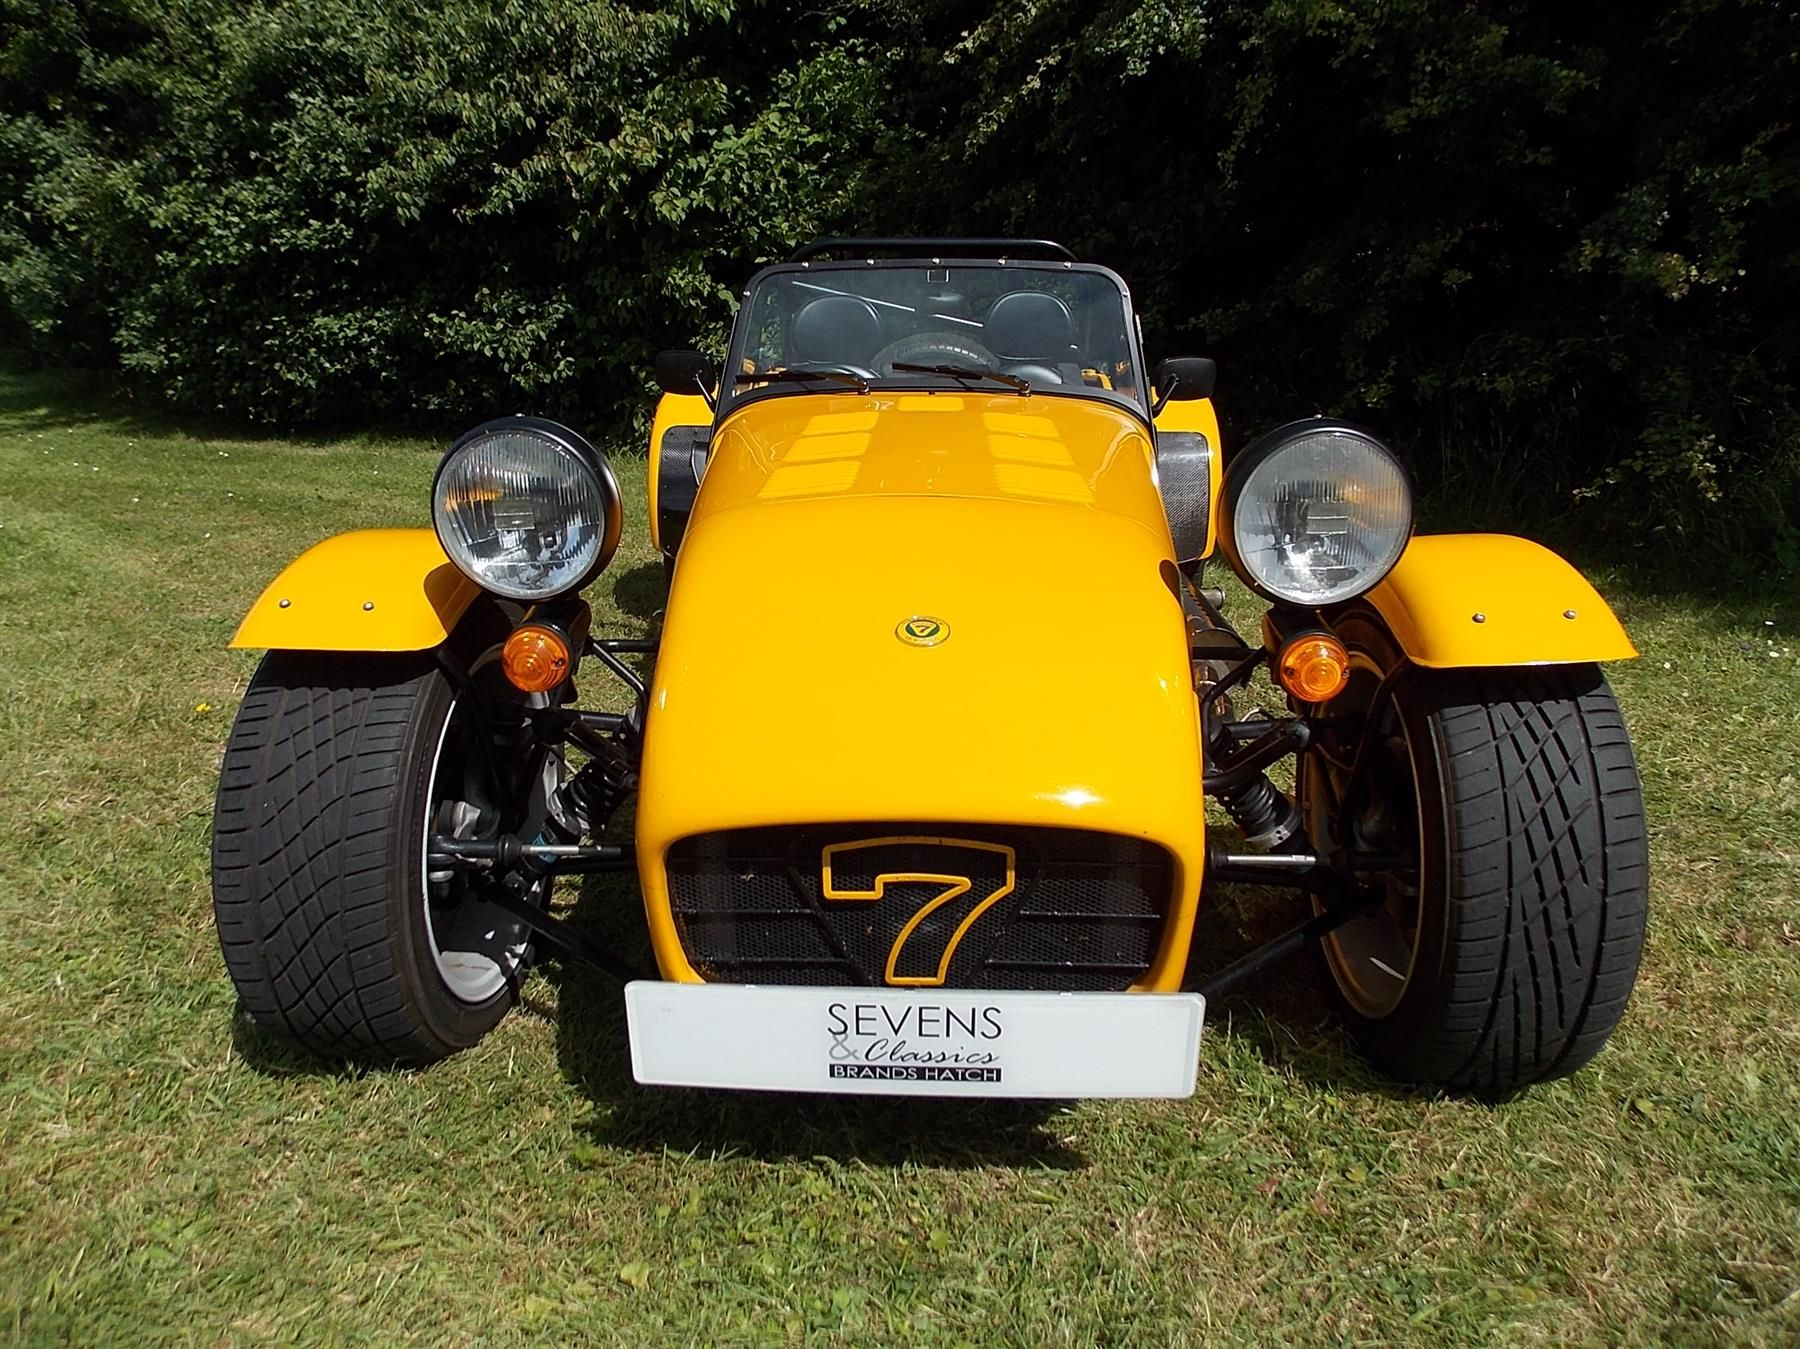 Used 2001 Caterham All Models for sale in Kent from Sevens ...